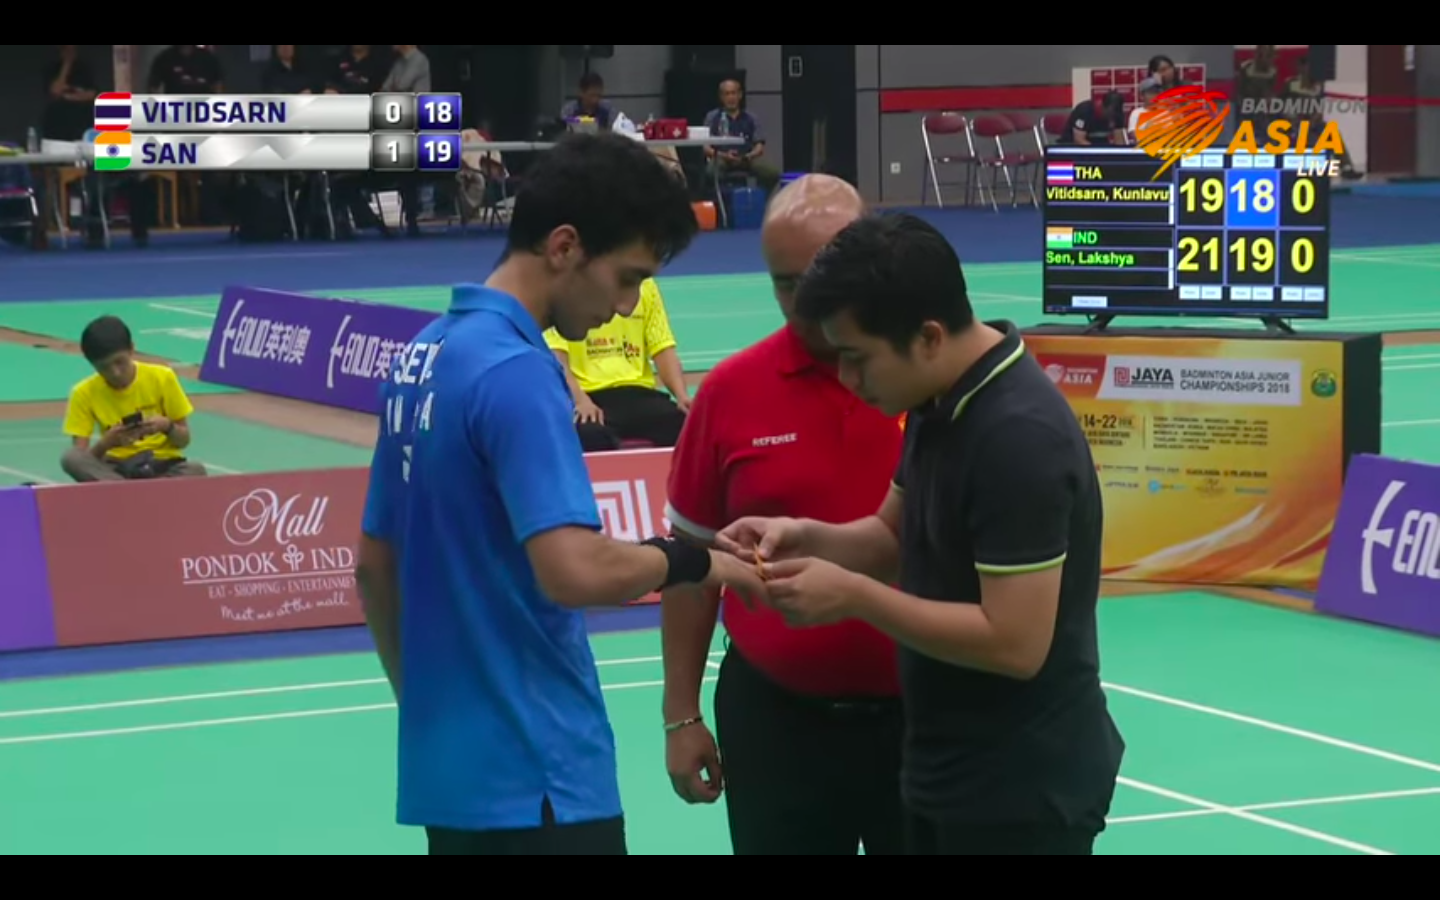 Was Lakshya Sen's medical timeout a tactical move? (Image: YouTube screengrab)